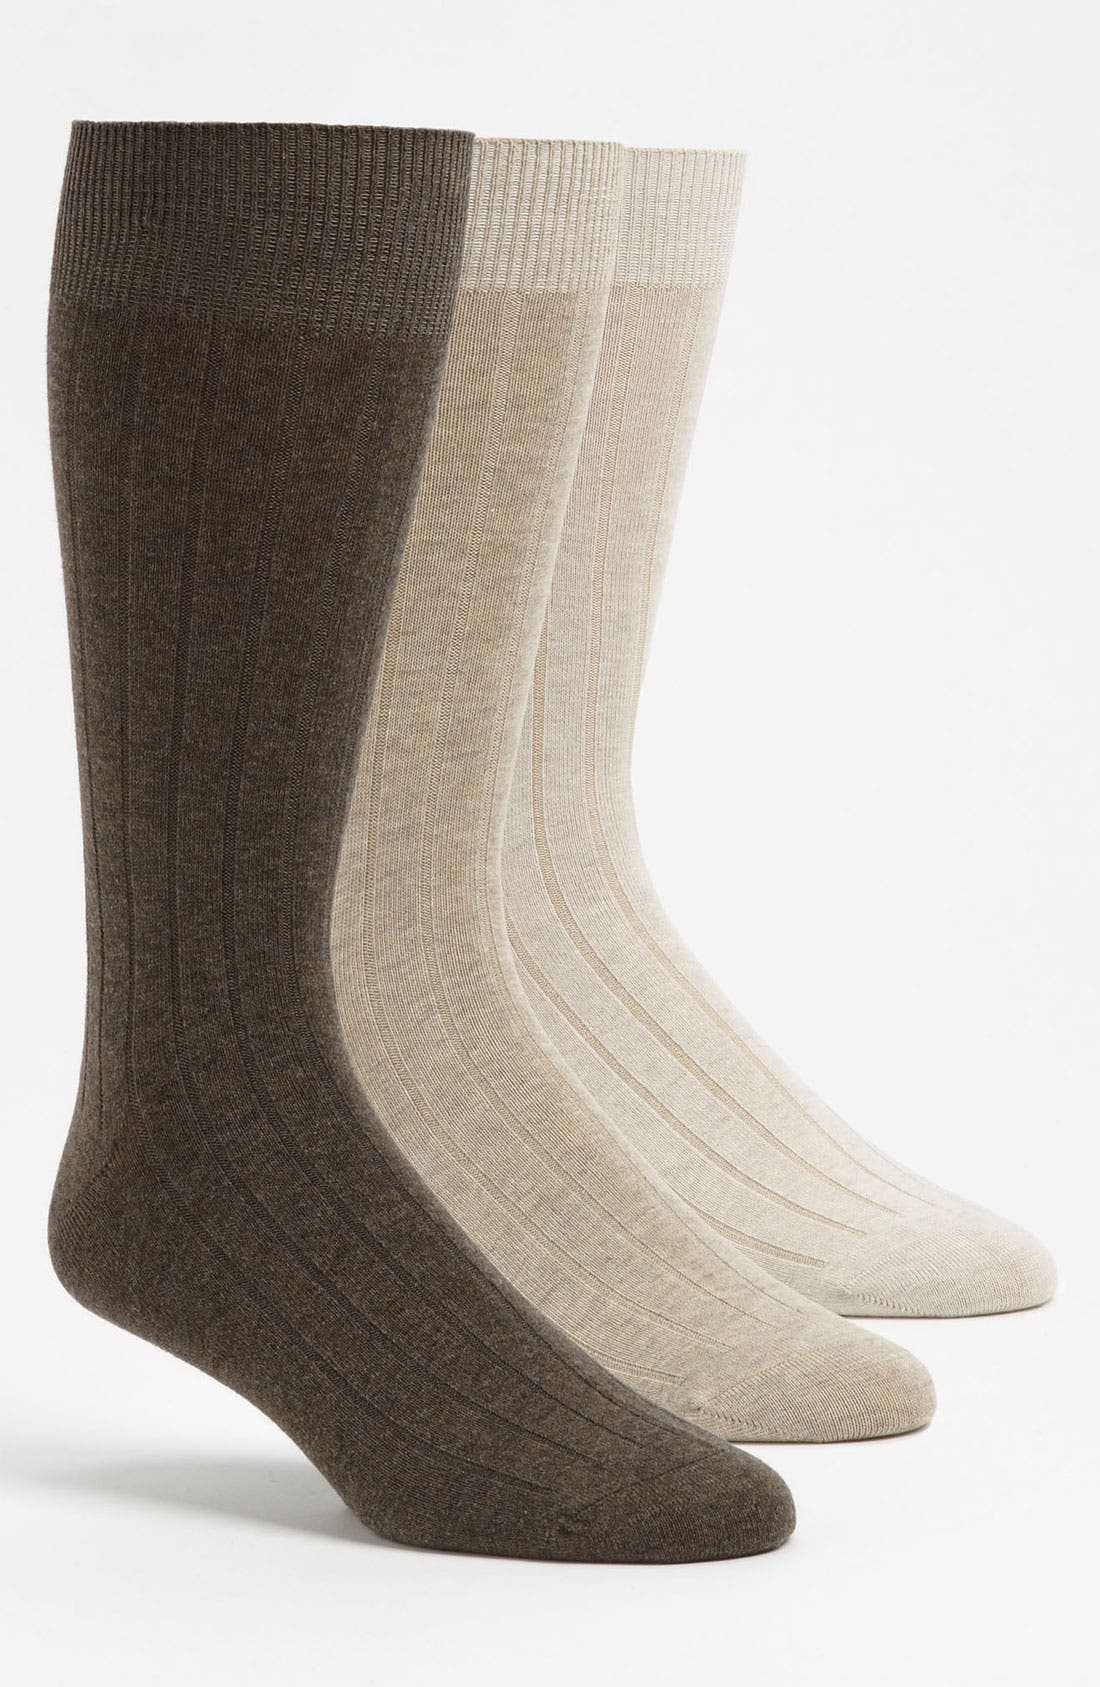 Alternate Image 1 Selected - Tommy Bahama 'Cayman Casual' Crew Socks (3-Pack)